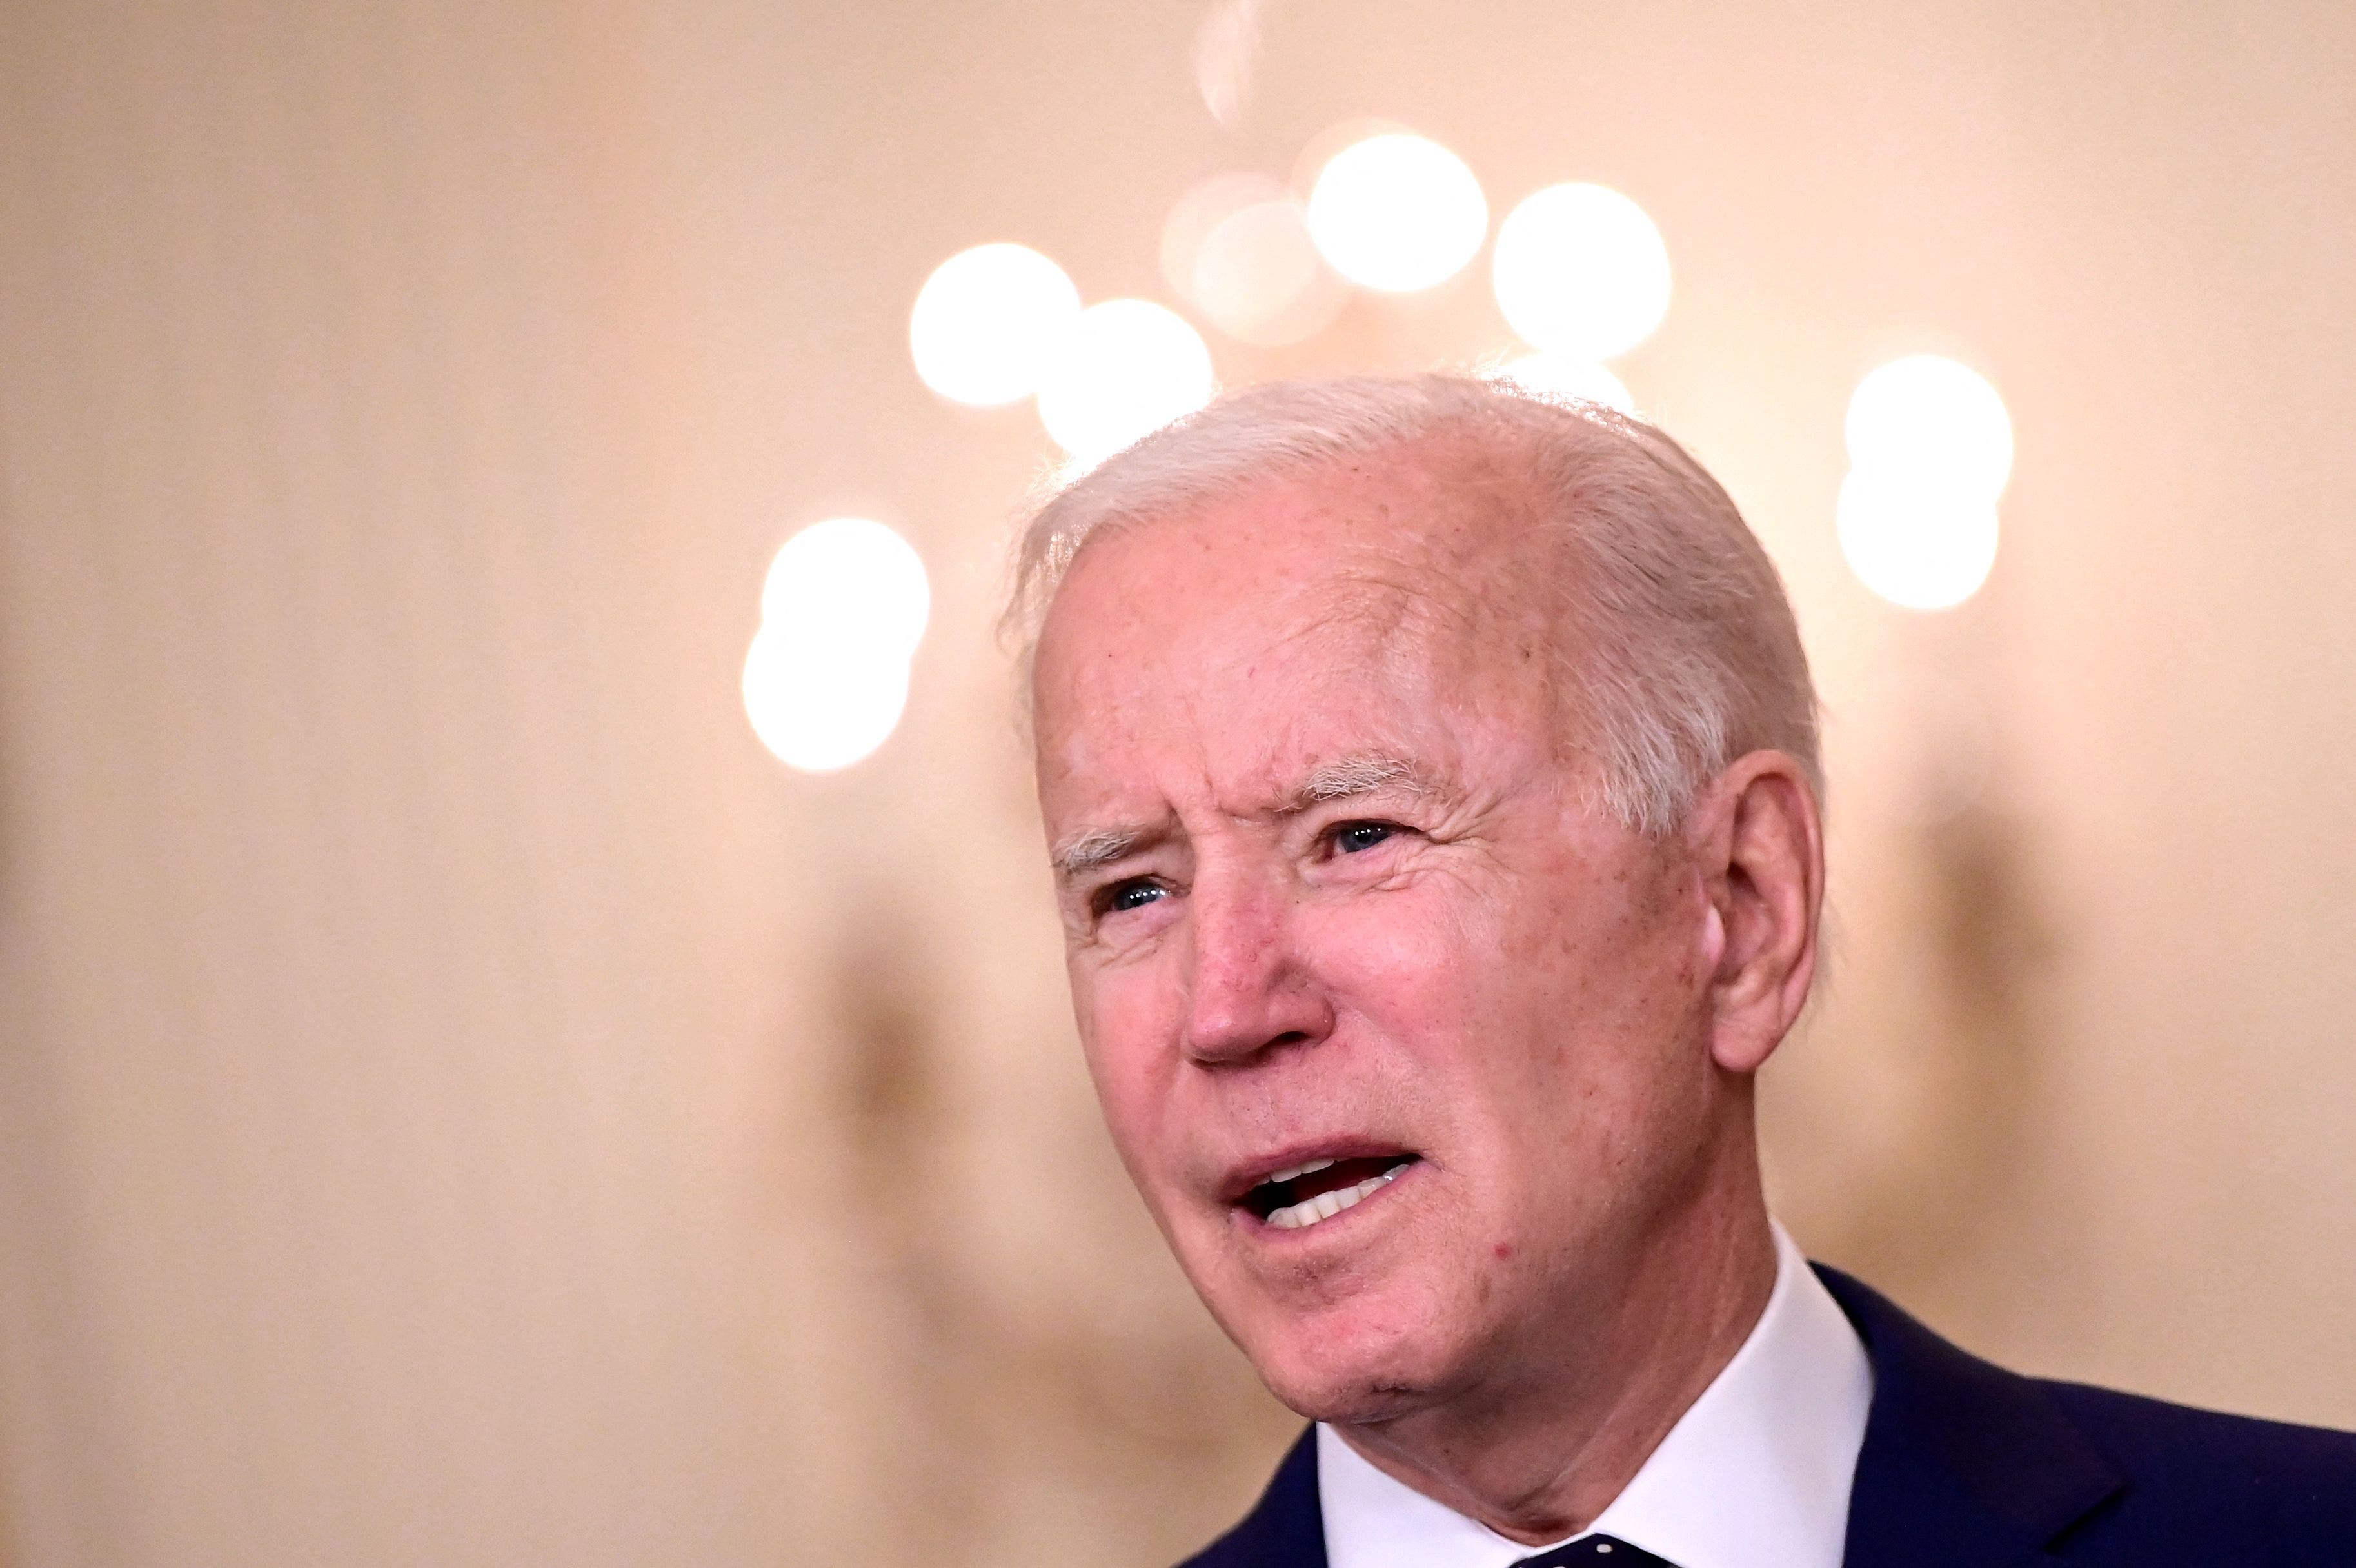 Biden news: President to be briefed on Indianapolis FedEx shooting